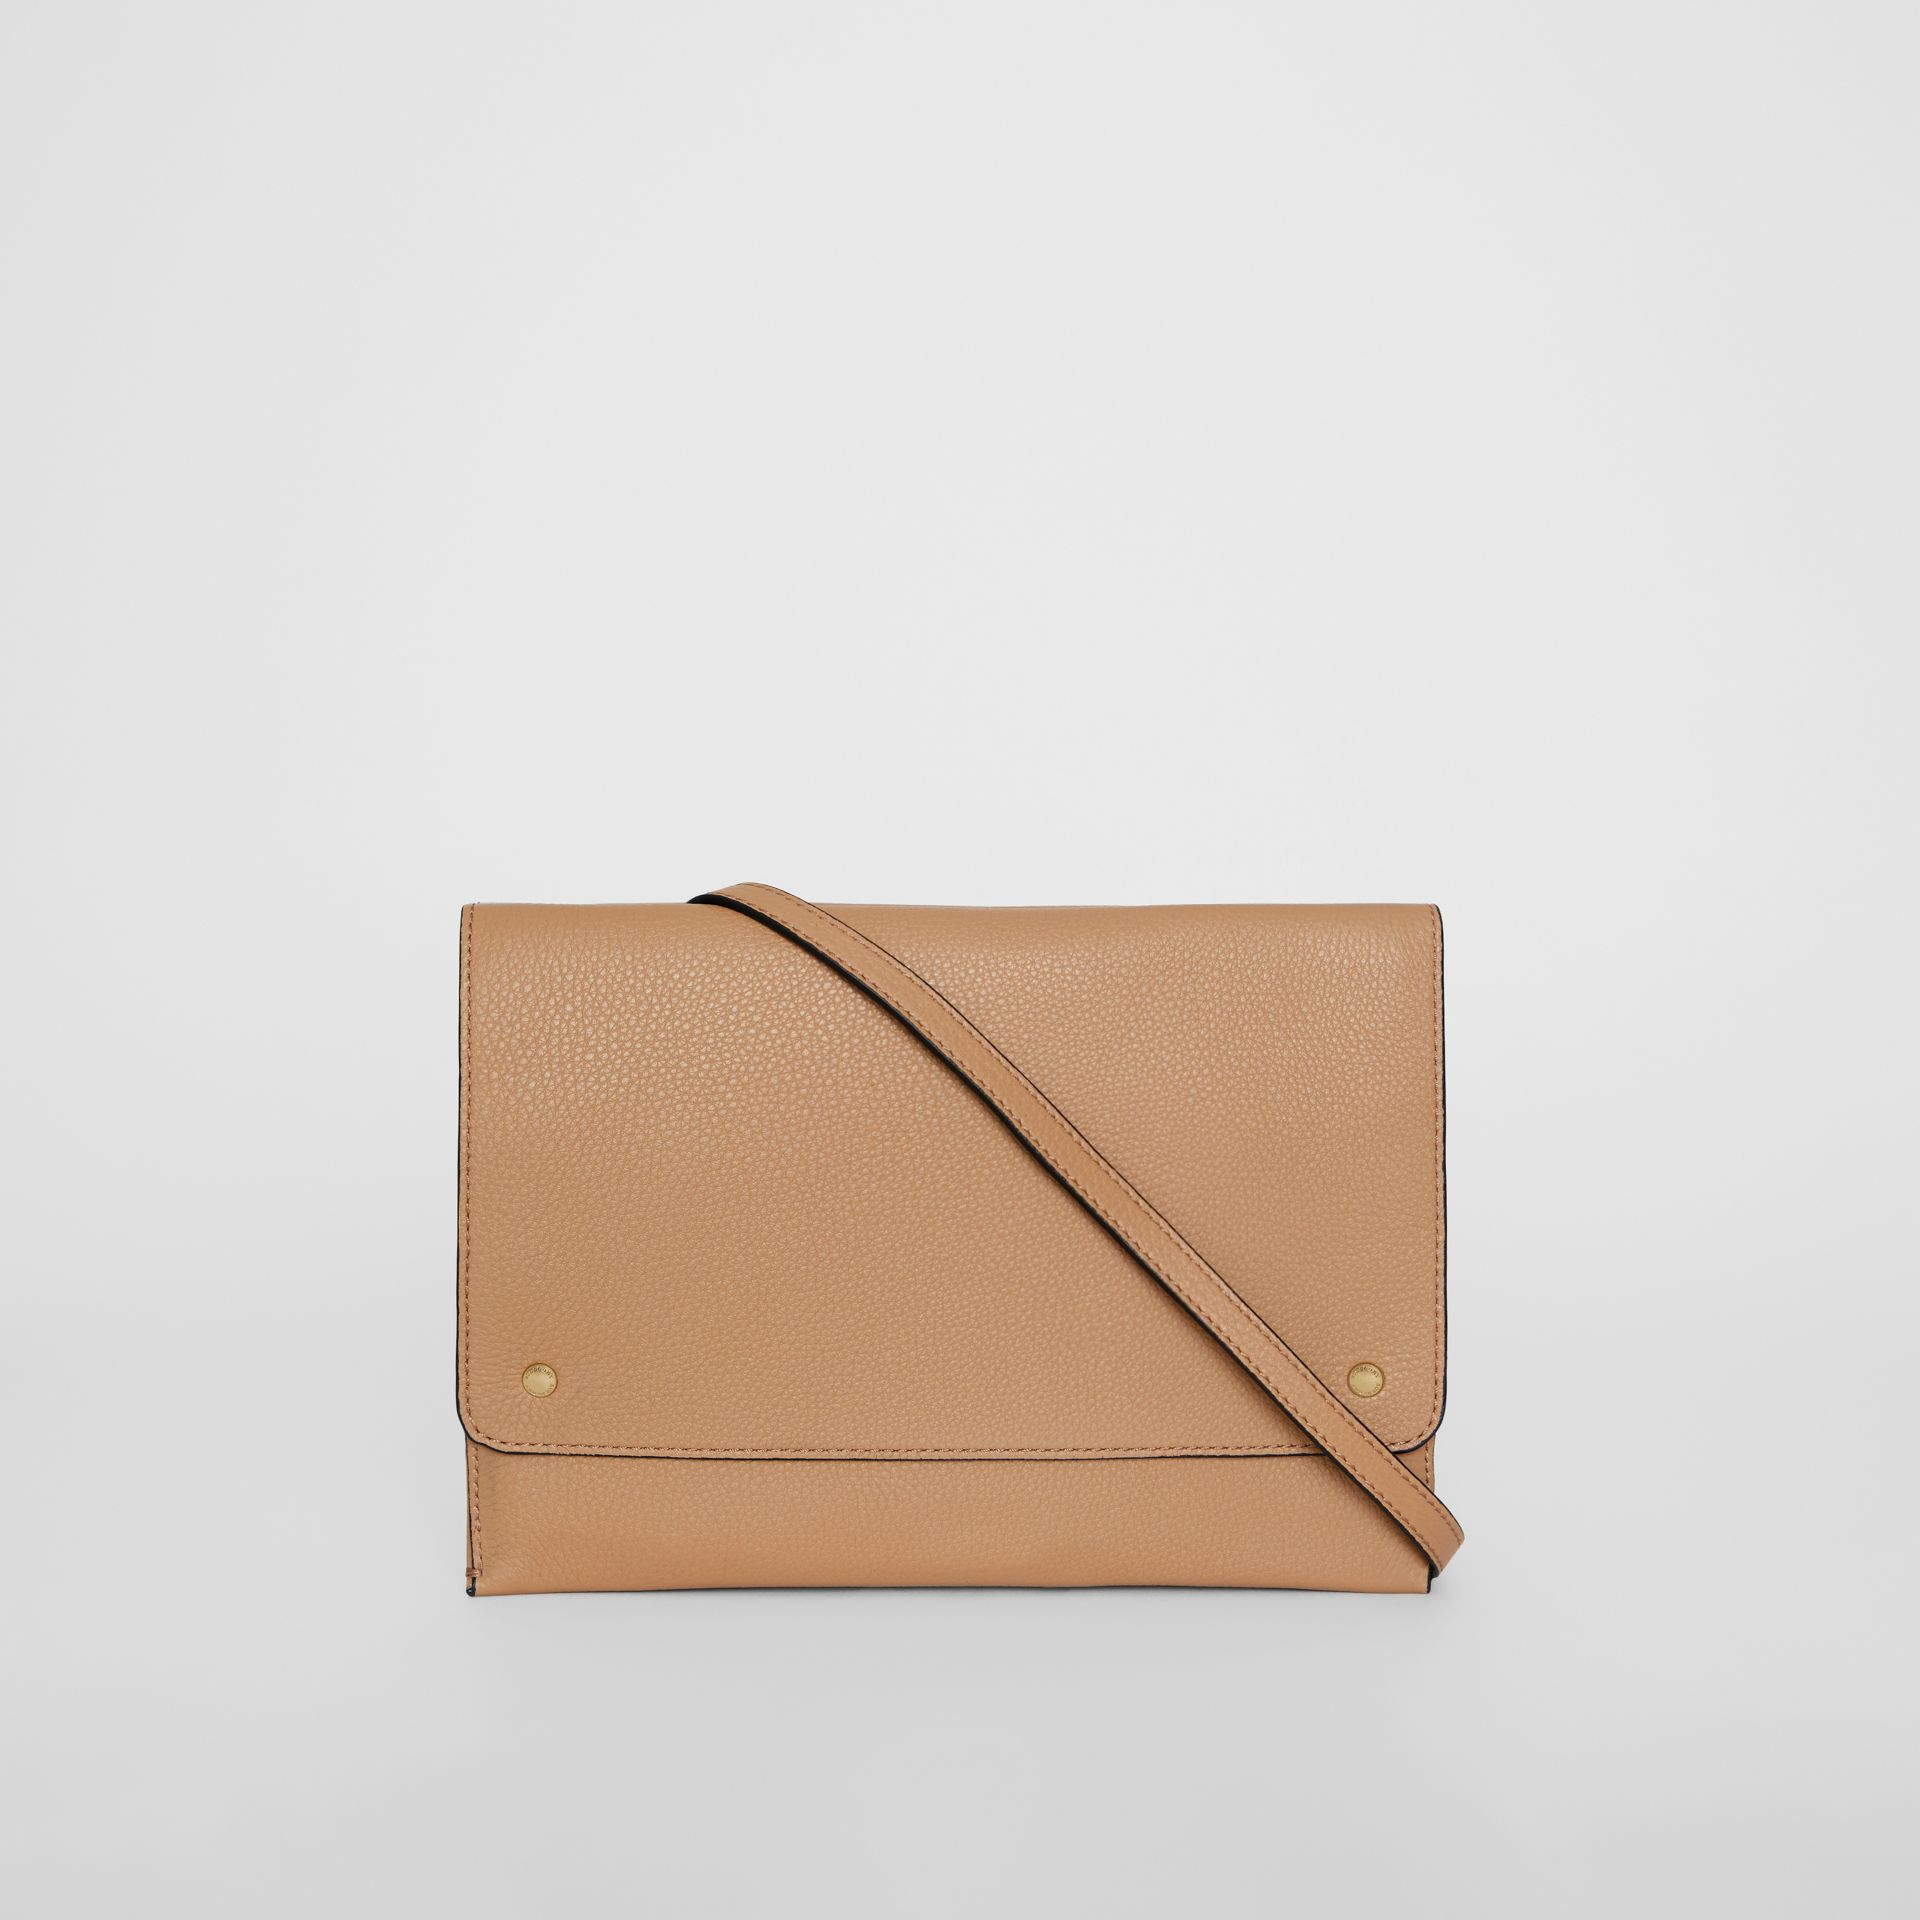 Leather Pouch with Detachable Strap in Light Camel - Women | Burberry United States - gallery image 7